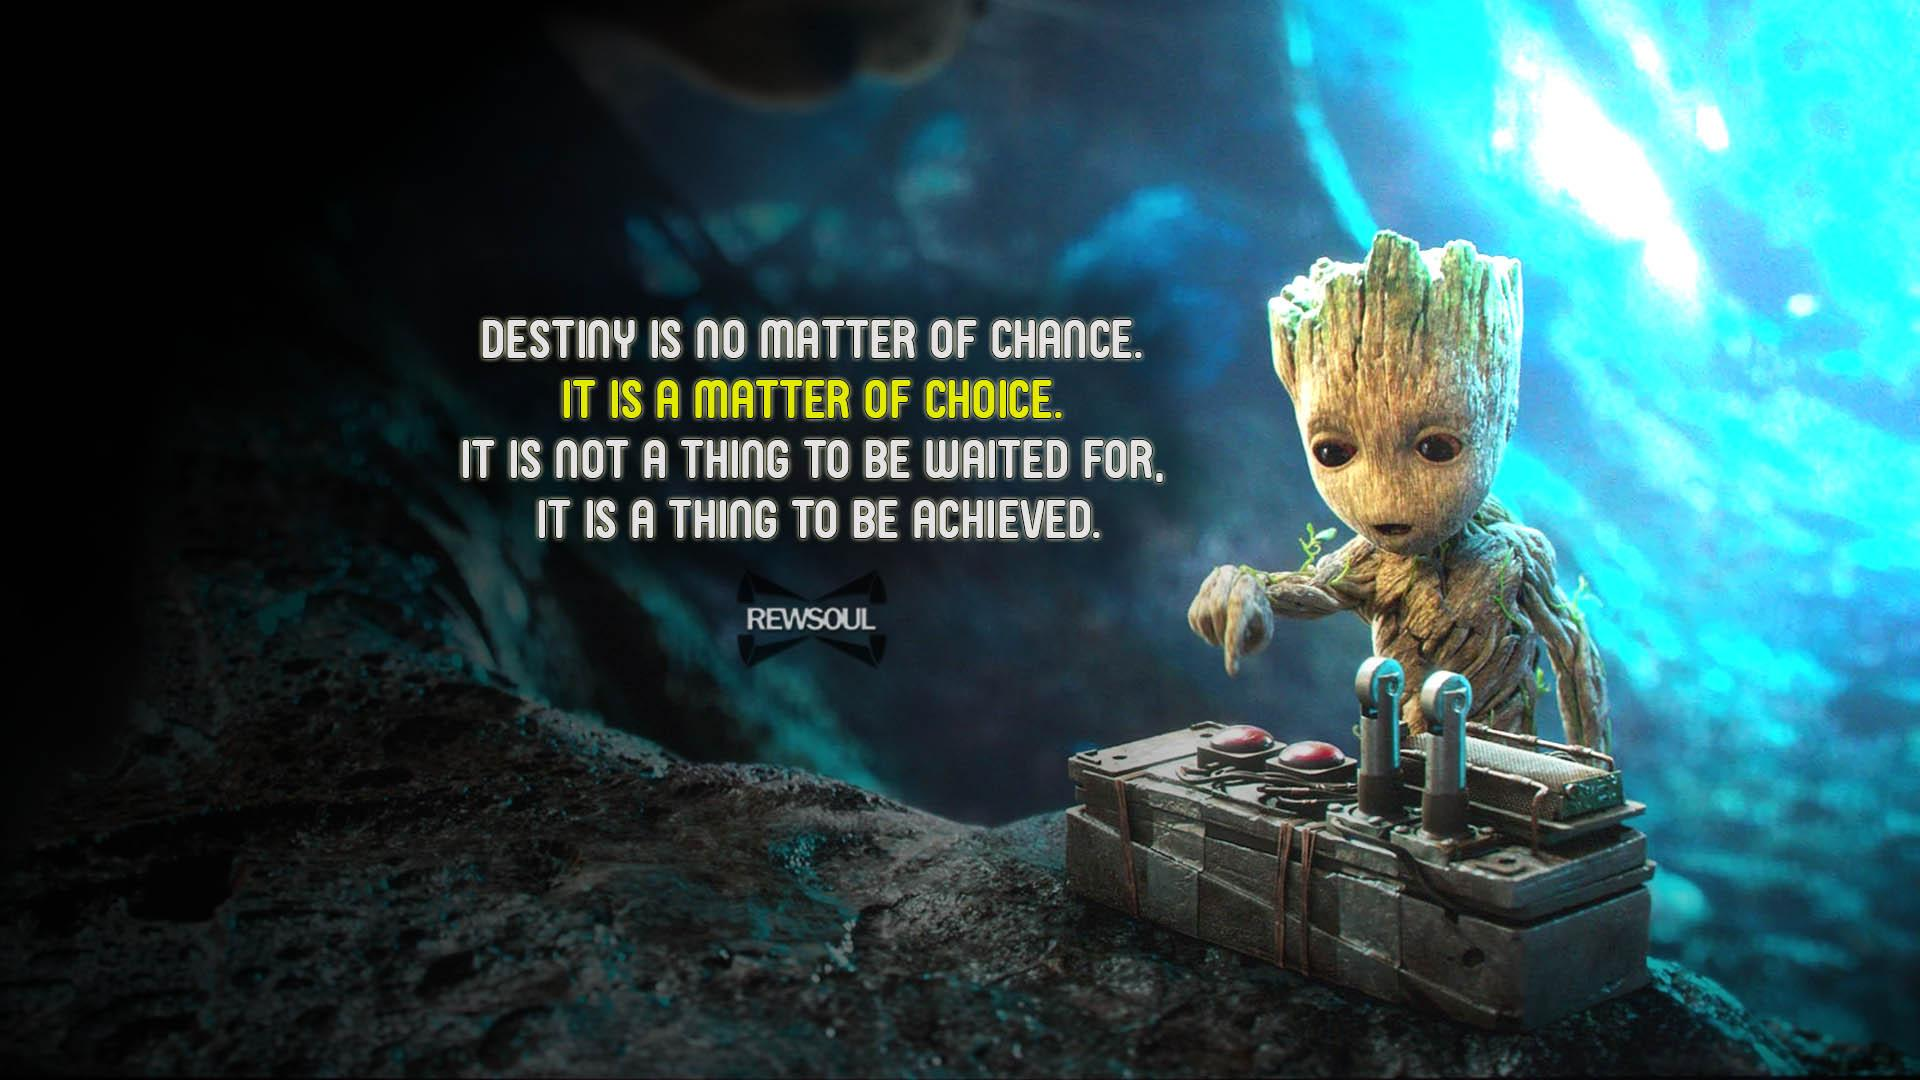 [Image] Destiny is a matter of choice.